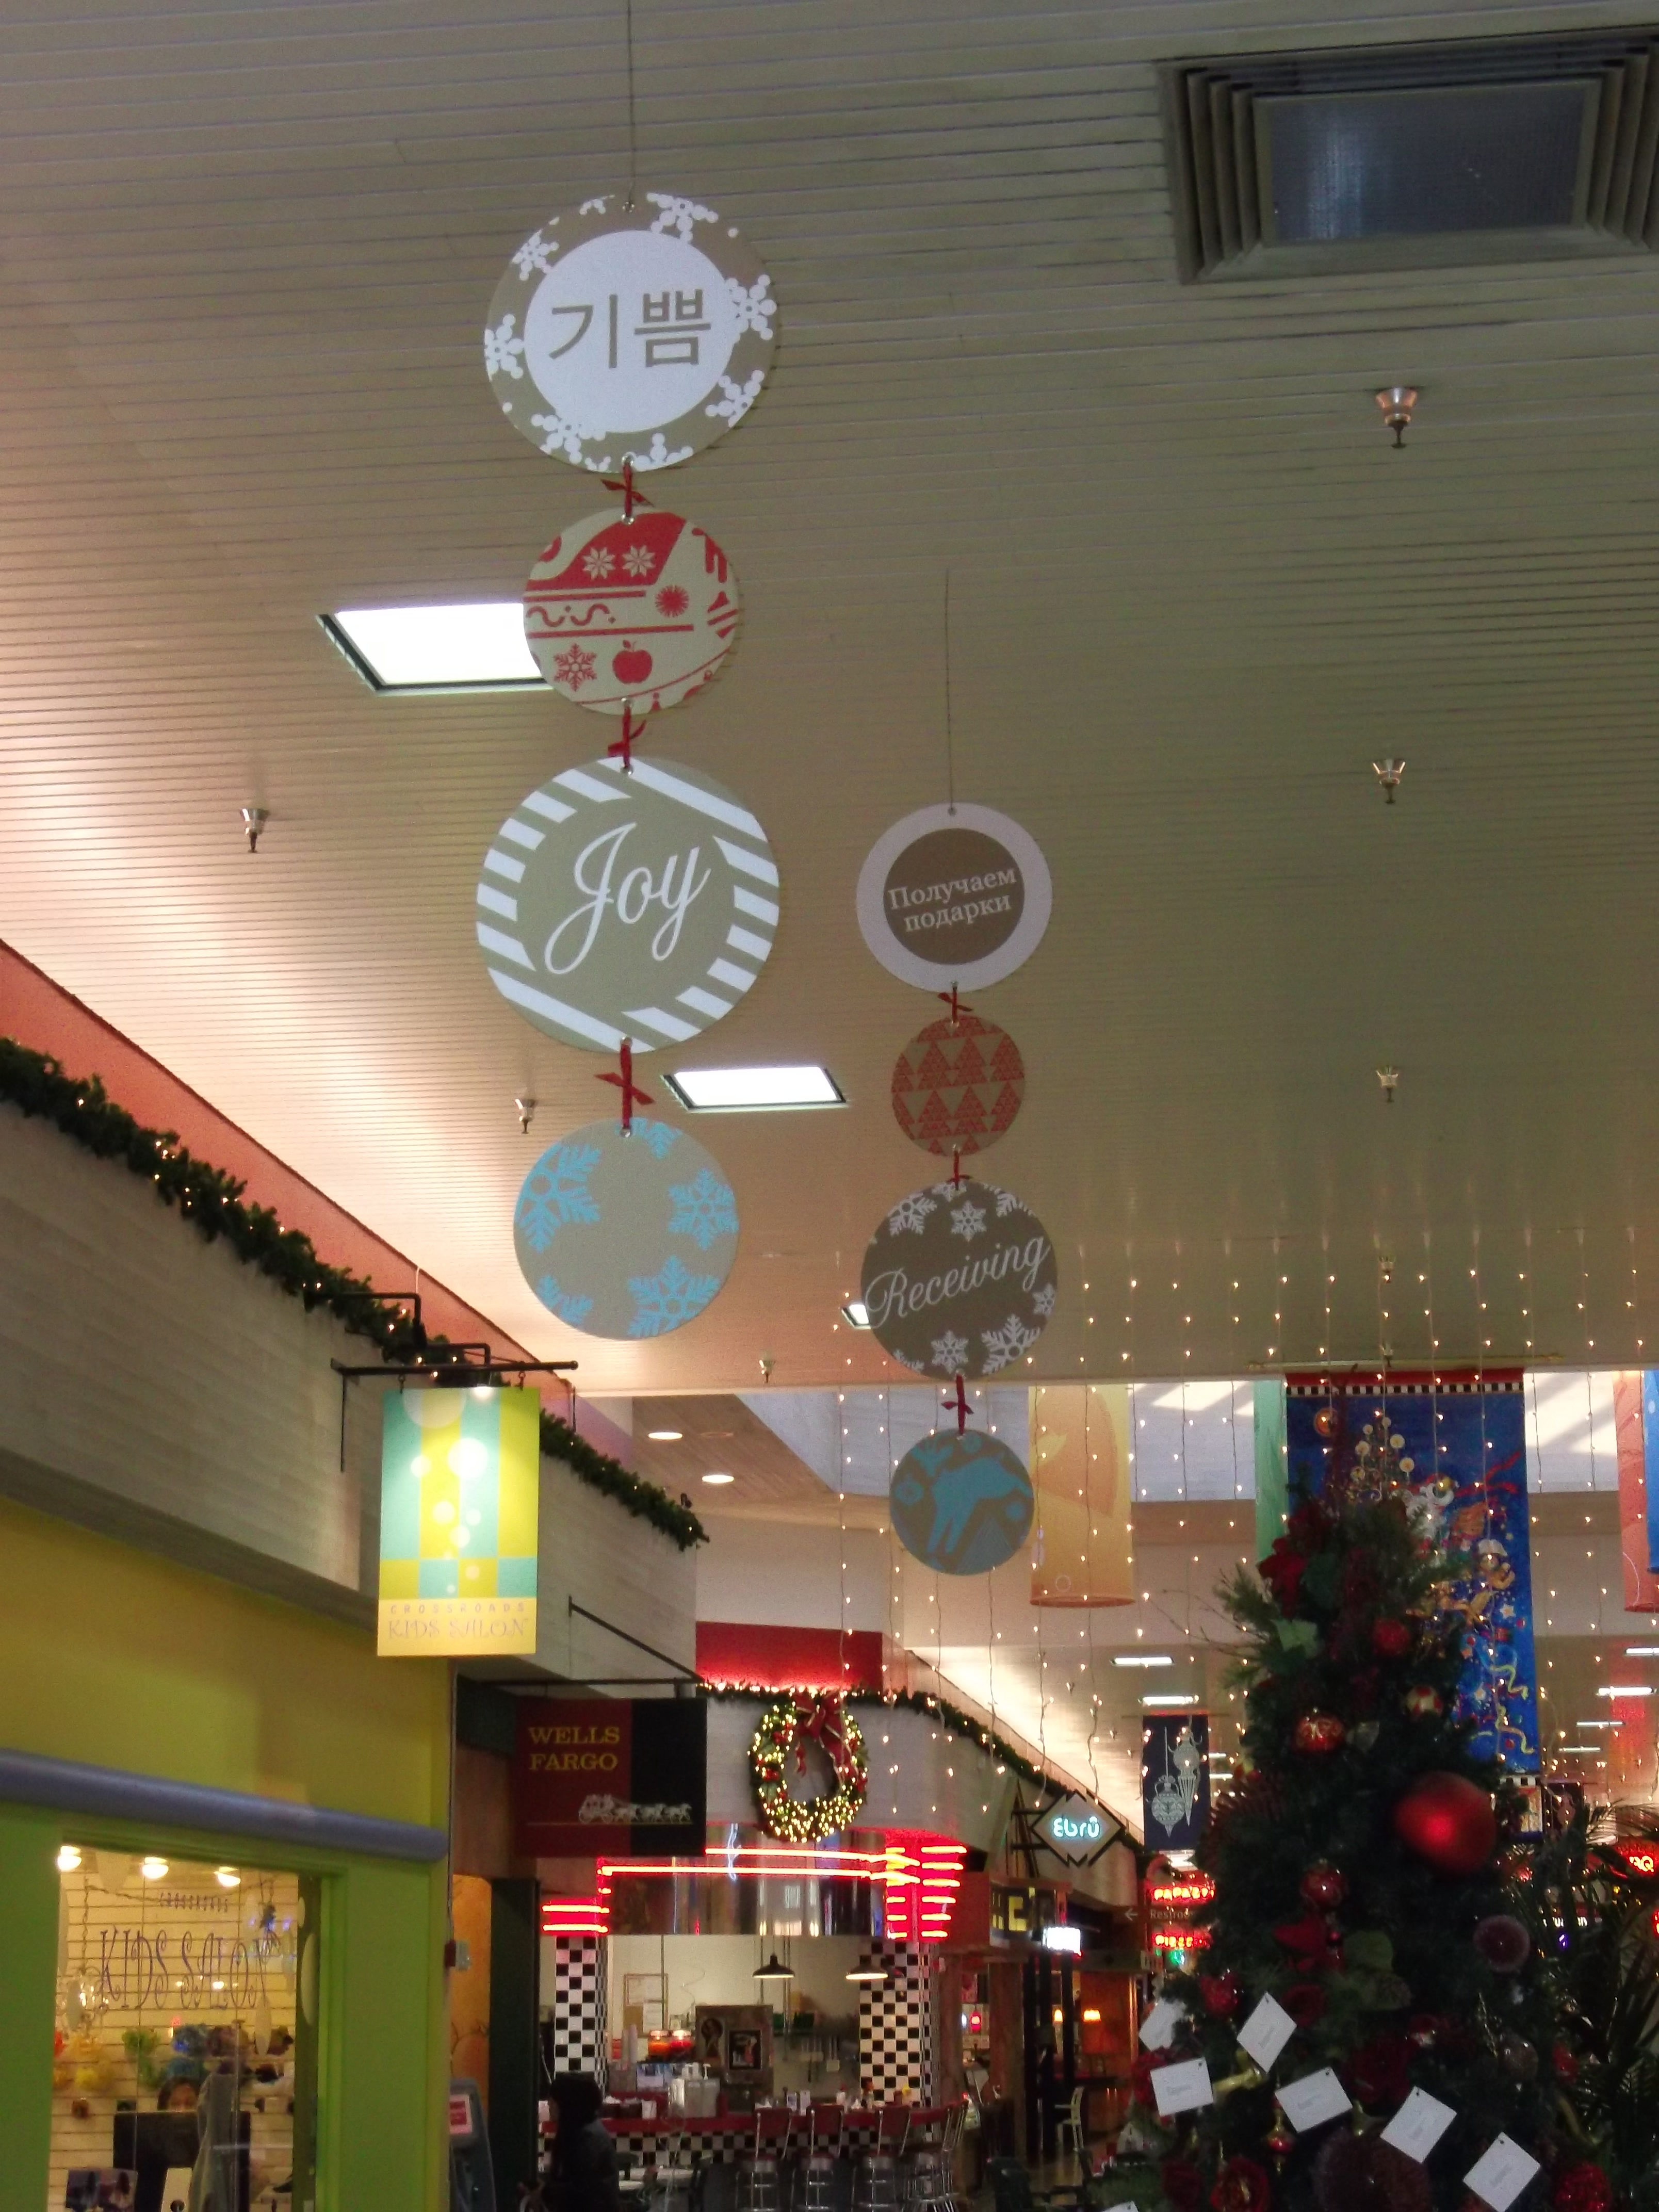 Washington graphics llc teams up with crossroads mall to for Retail christmas decorations ideas